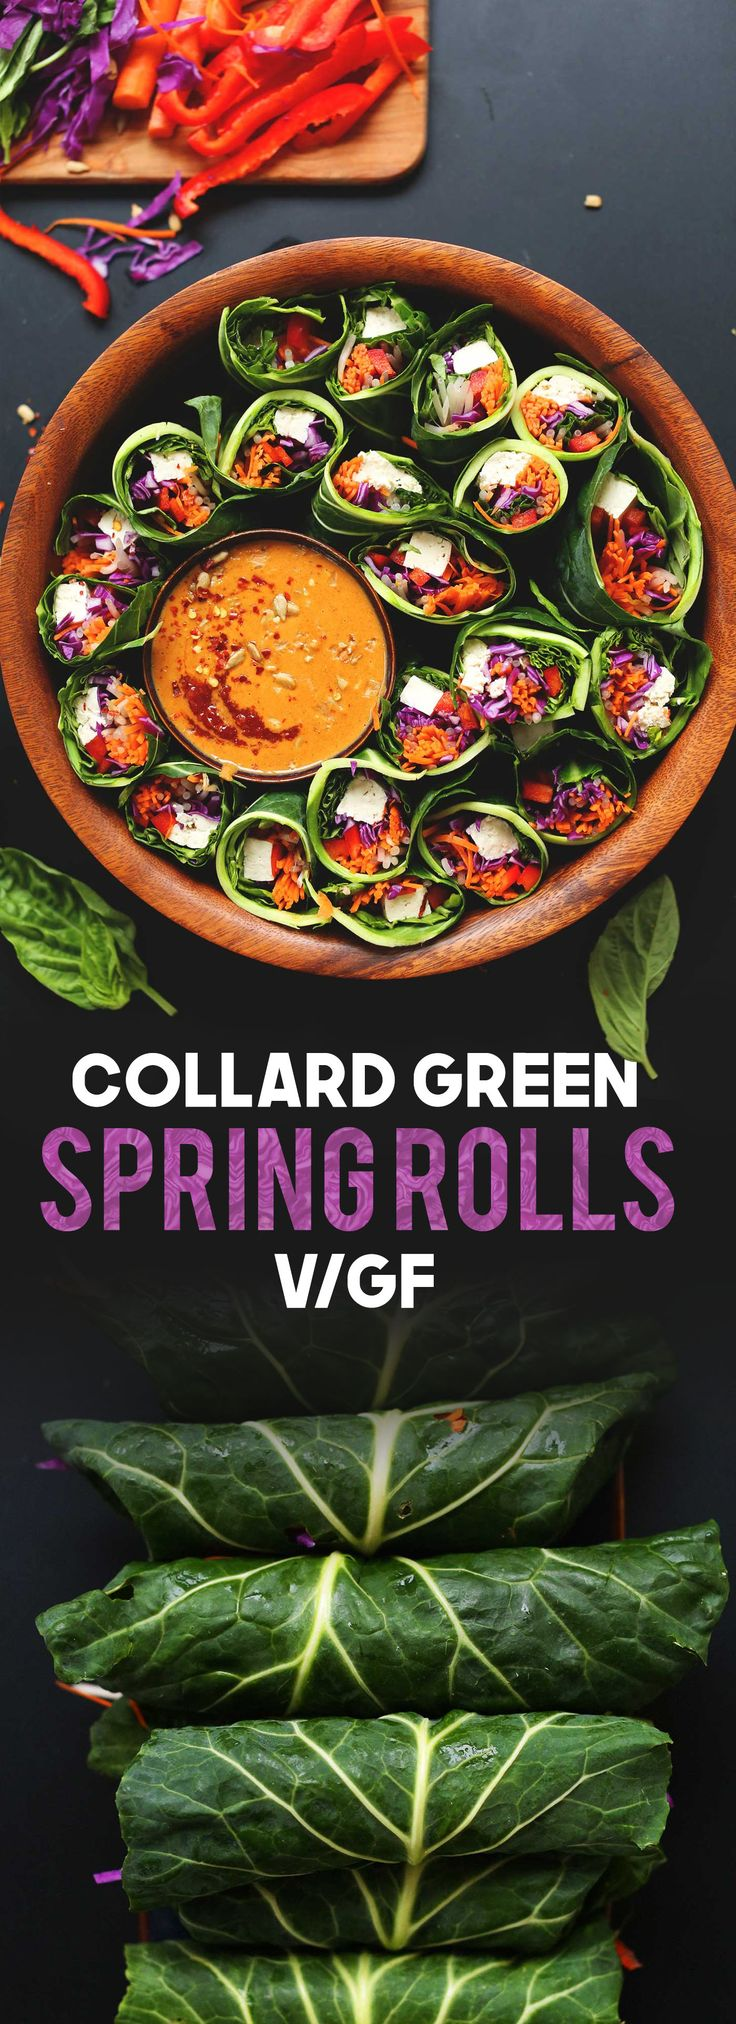 Collard Green Spring Rolls- I would sub in chicken and coconut aminos to make them paleo!